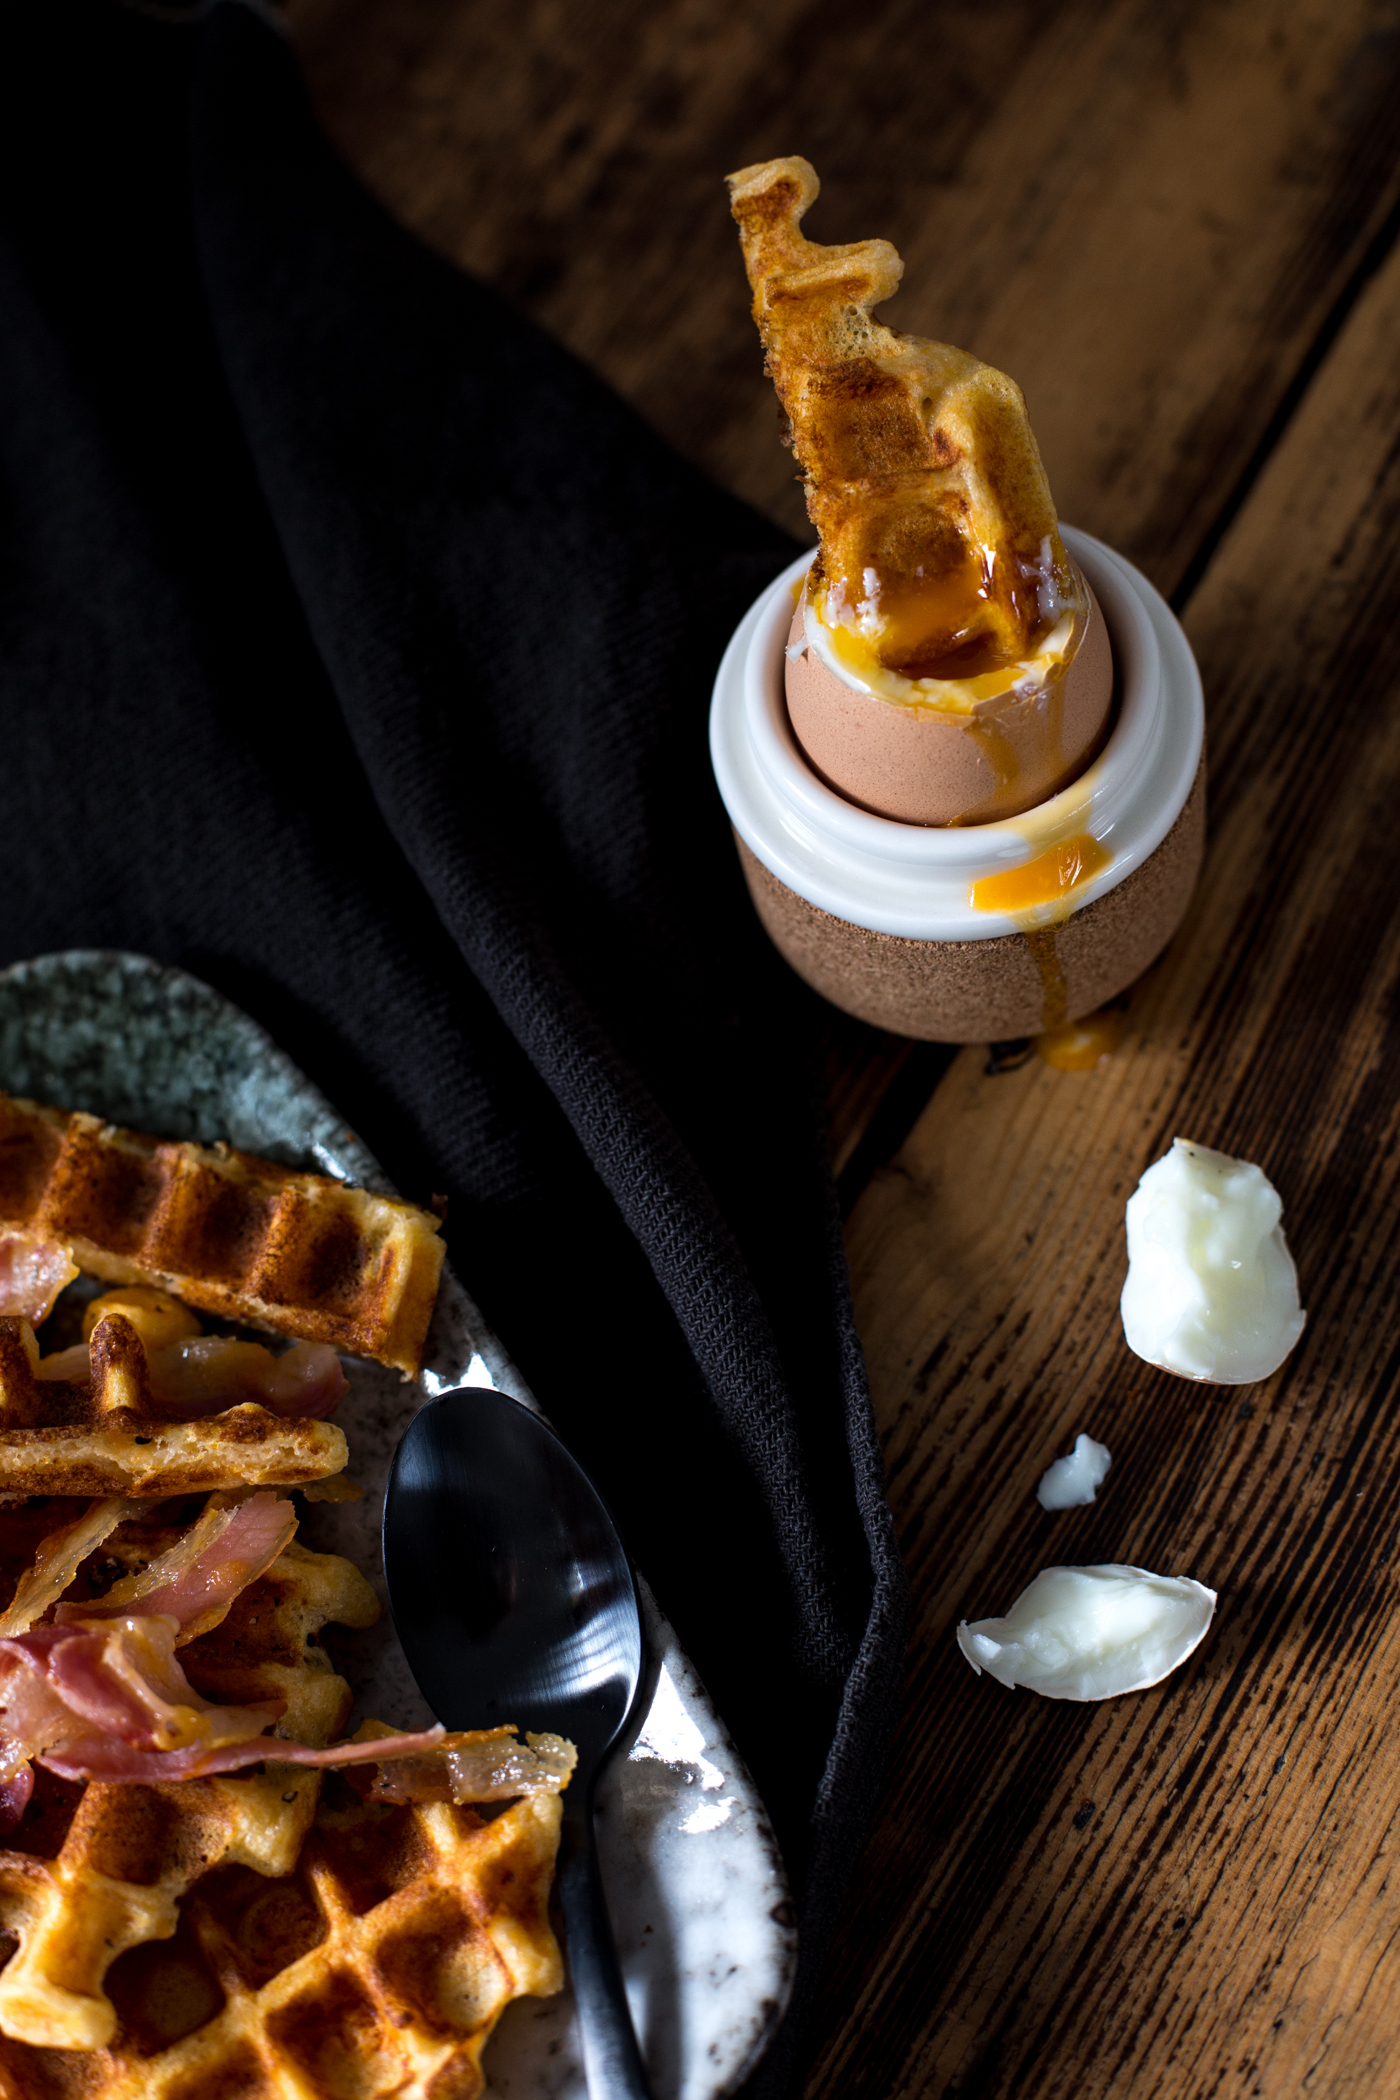 oeuf-coque-mouillettes-gaufre-patate-douce-5